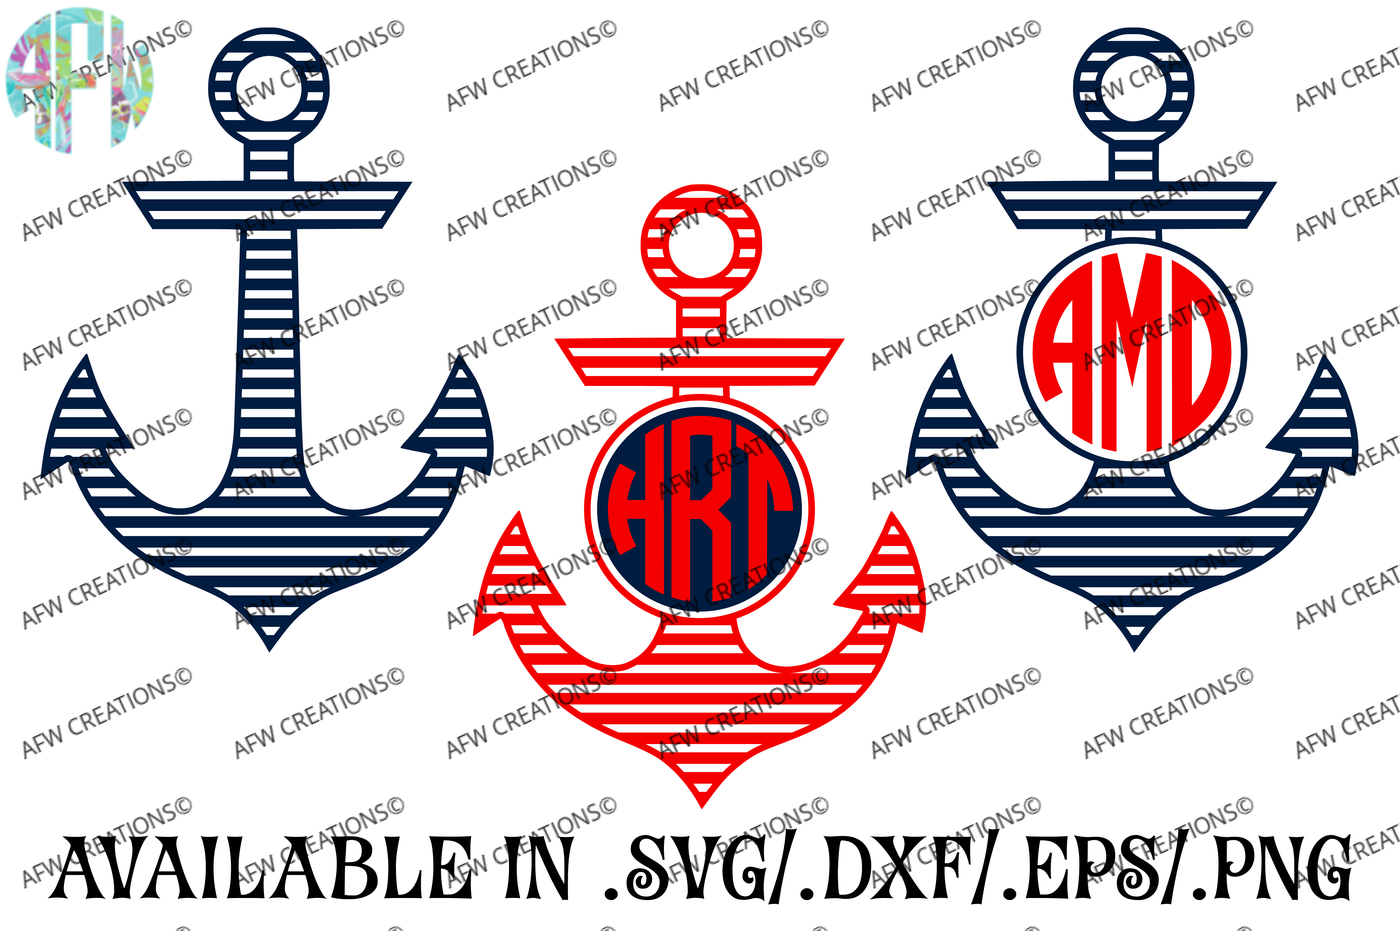 Striped Monogram Anchors Svg Dxf Eps Cut Files By Afw Designs Thehungryjpeg Com